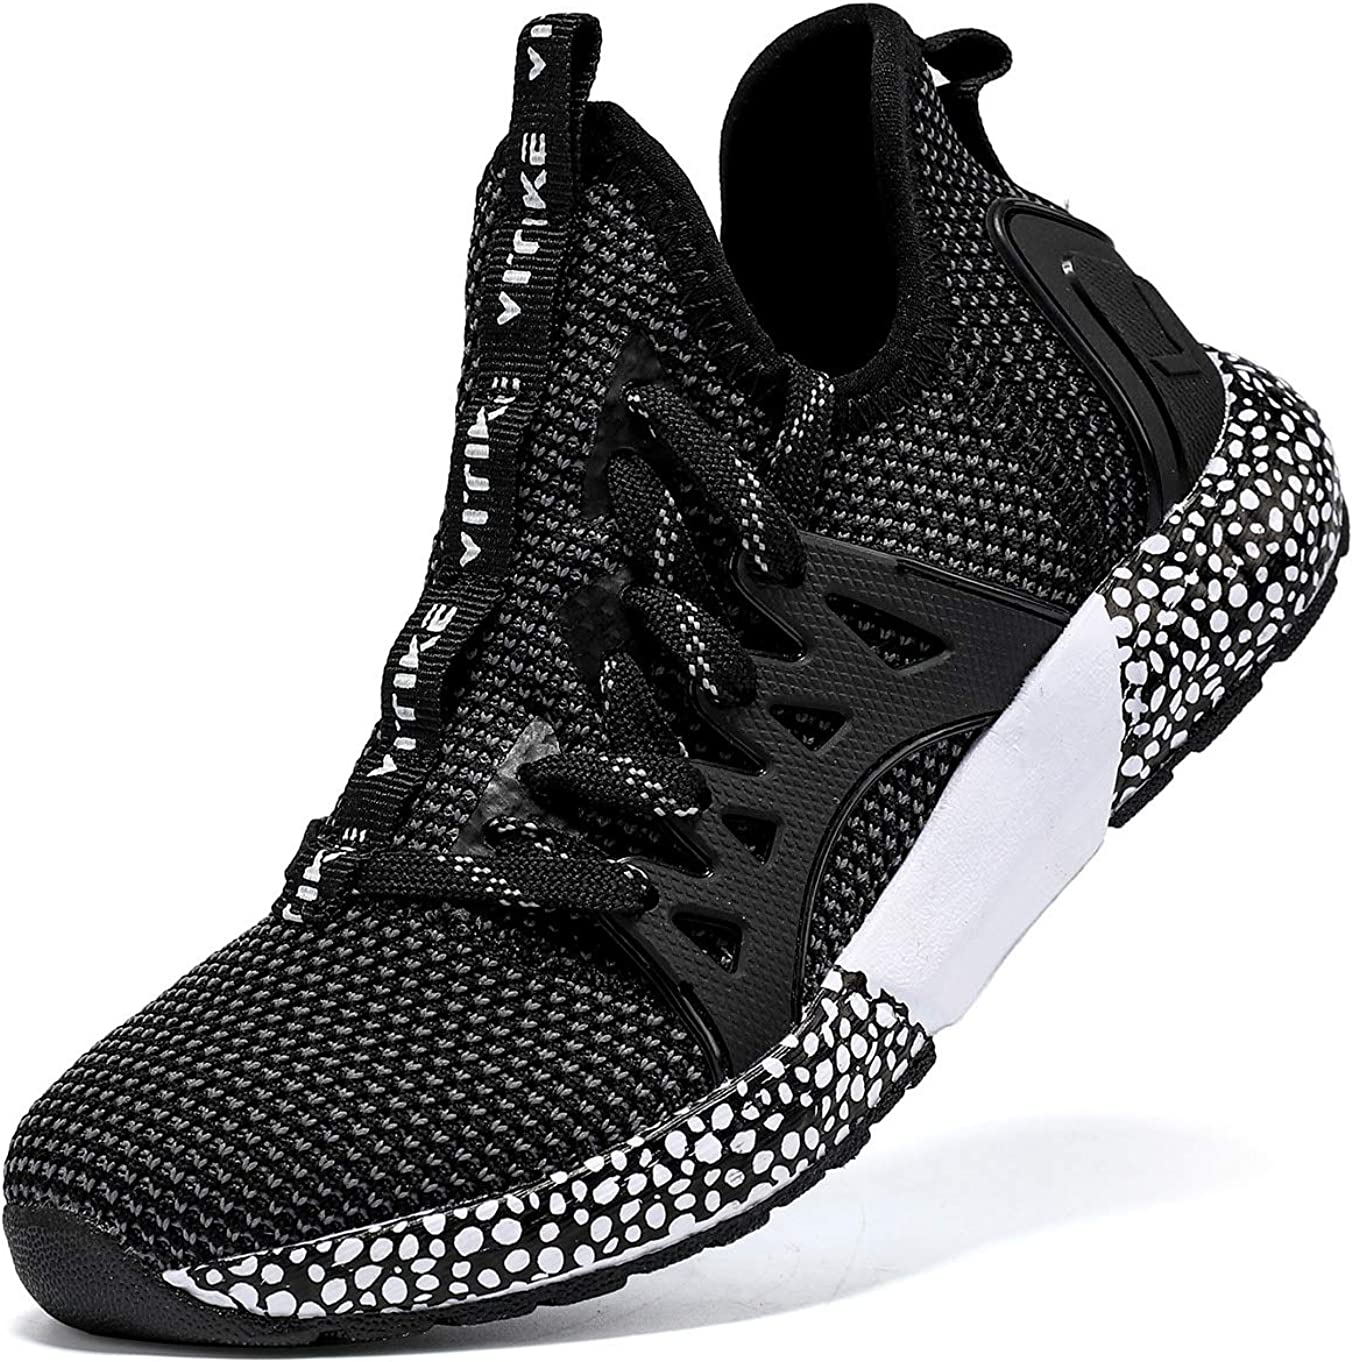 Kids Trainers Boys Sneakers Mesh Sports Running Shoes Girls Fitness Child  Tennis Breathable Lightweight Fashion Gymnastics Trainers for Women Unisex:  Amazon.co.uk: Shoes & Bags